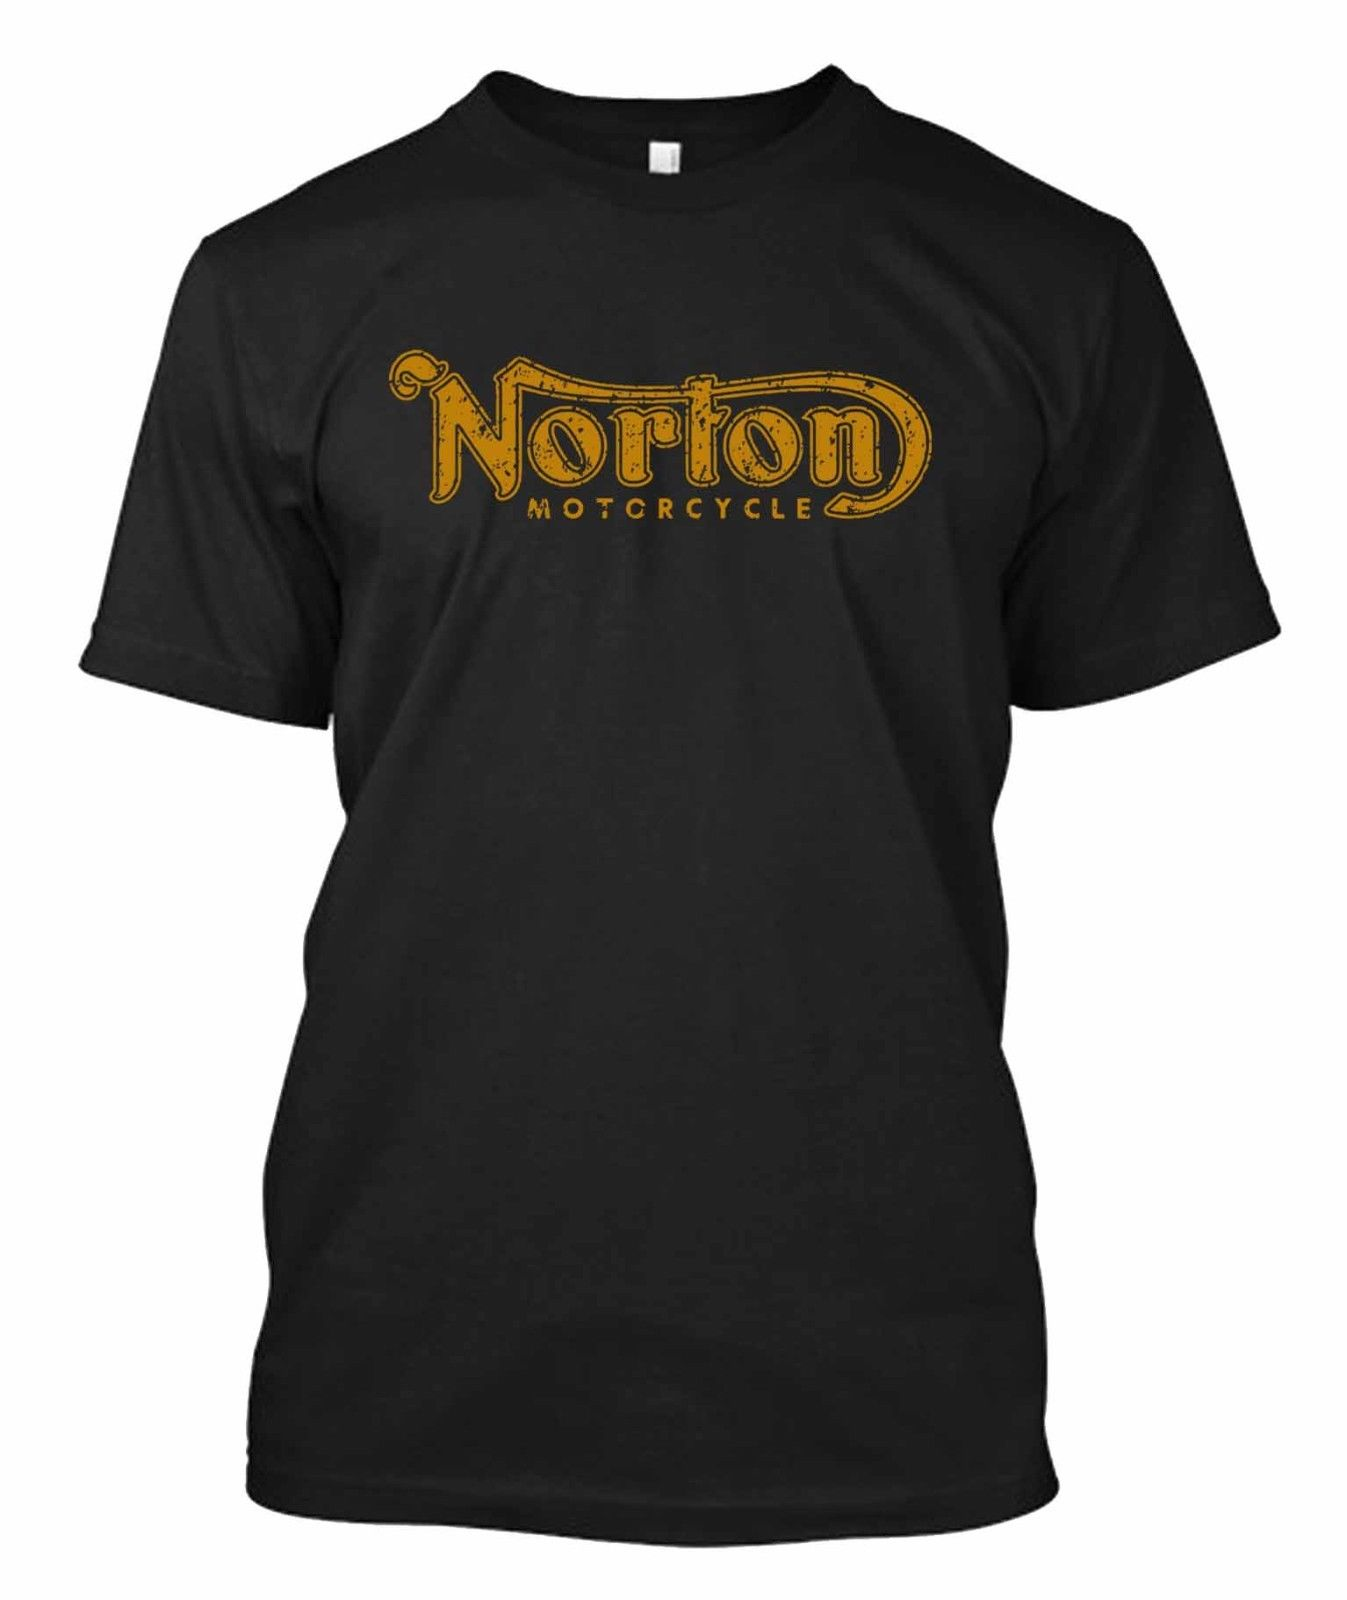 Vintage Norton - Custom Men's Black   T  -  Shirt   Tee Summer Men'S fashion Tee,Comfortable   t     shirt  ,Casual Short Sleeve TEE